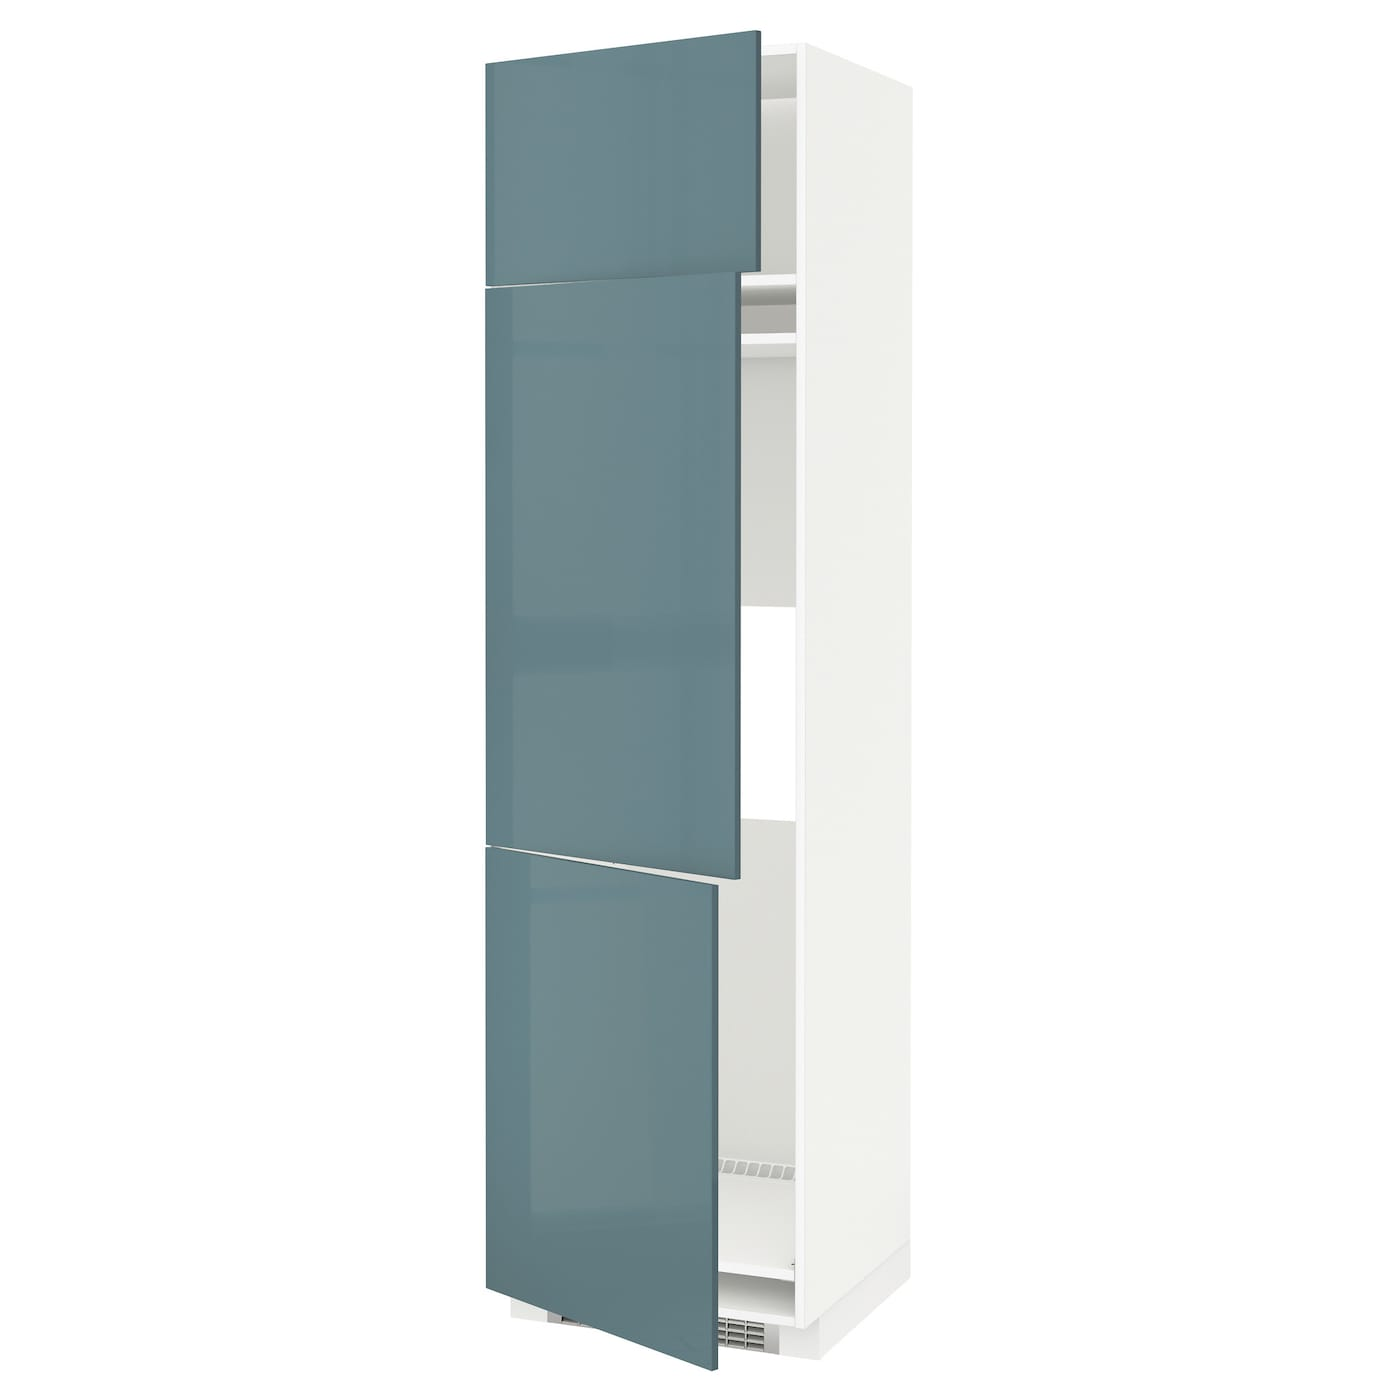 IKEA METOD high cab f fridge/freezer w 3 doors Sturdy frame construction, 18 mm thick.